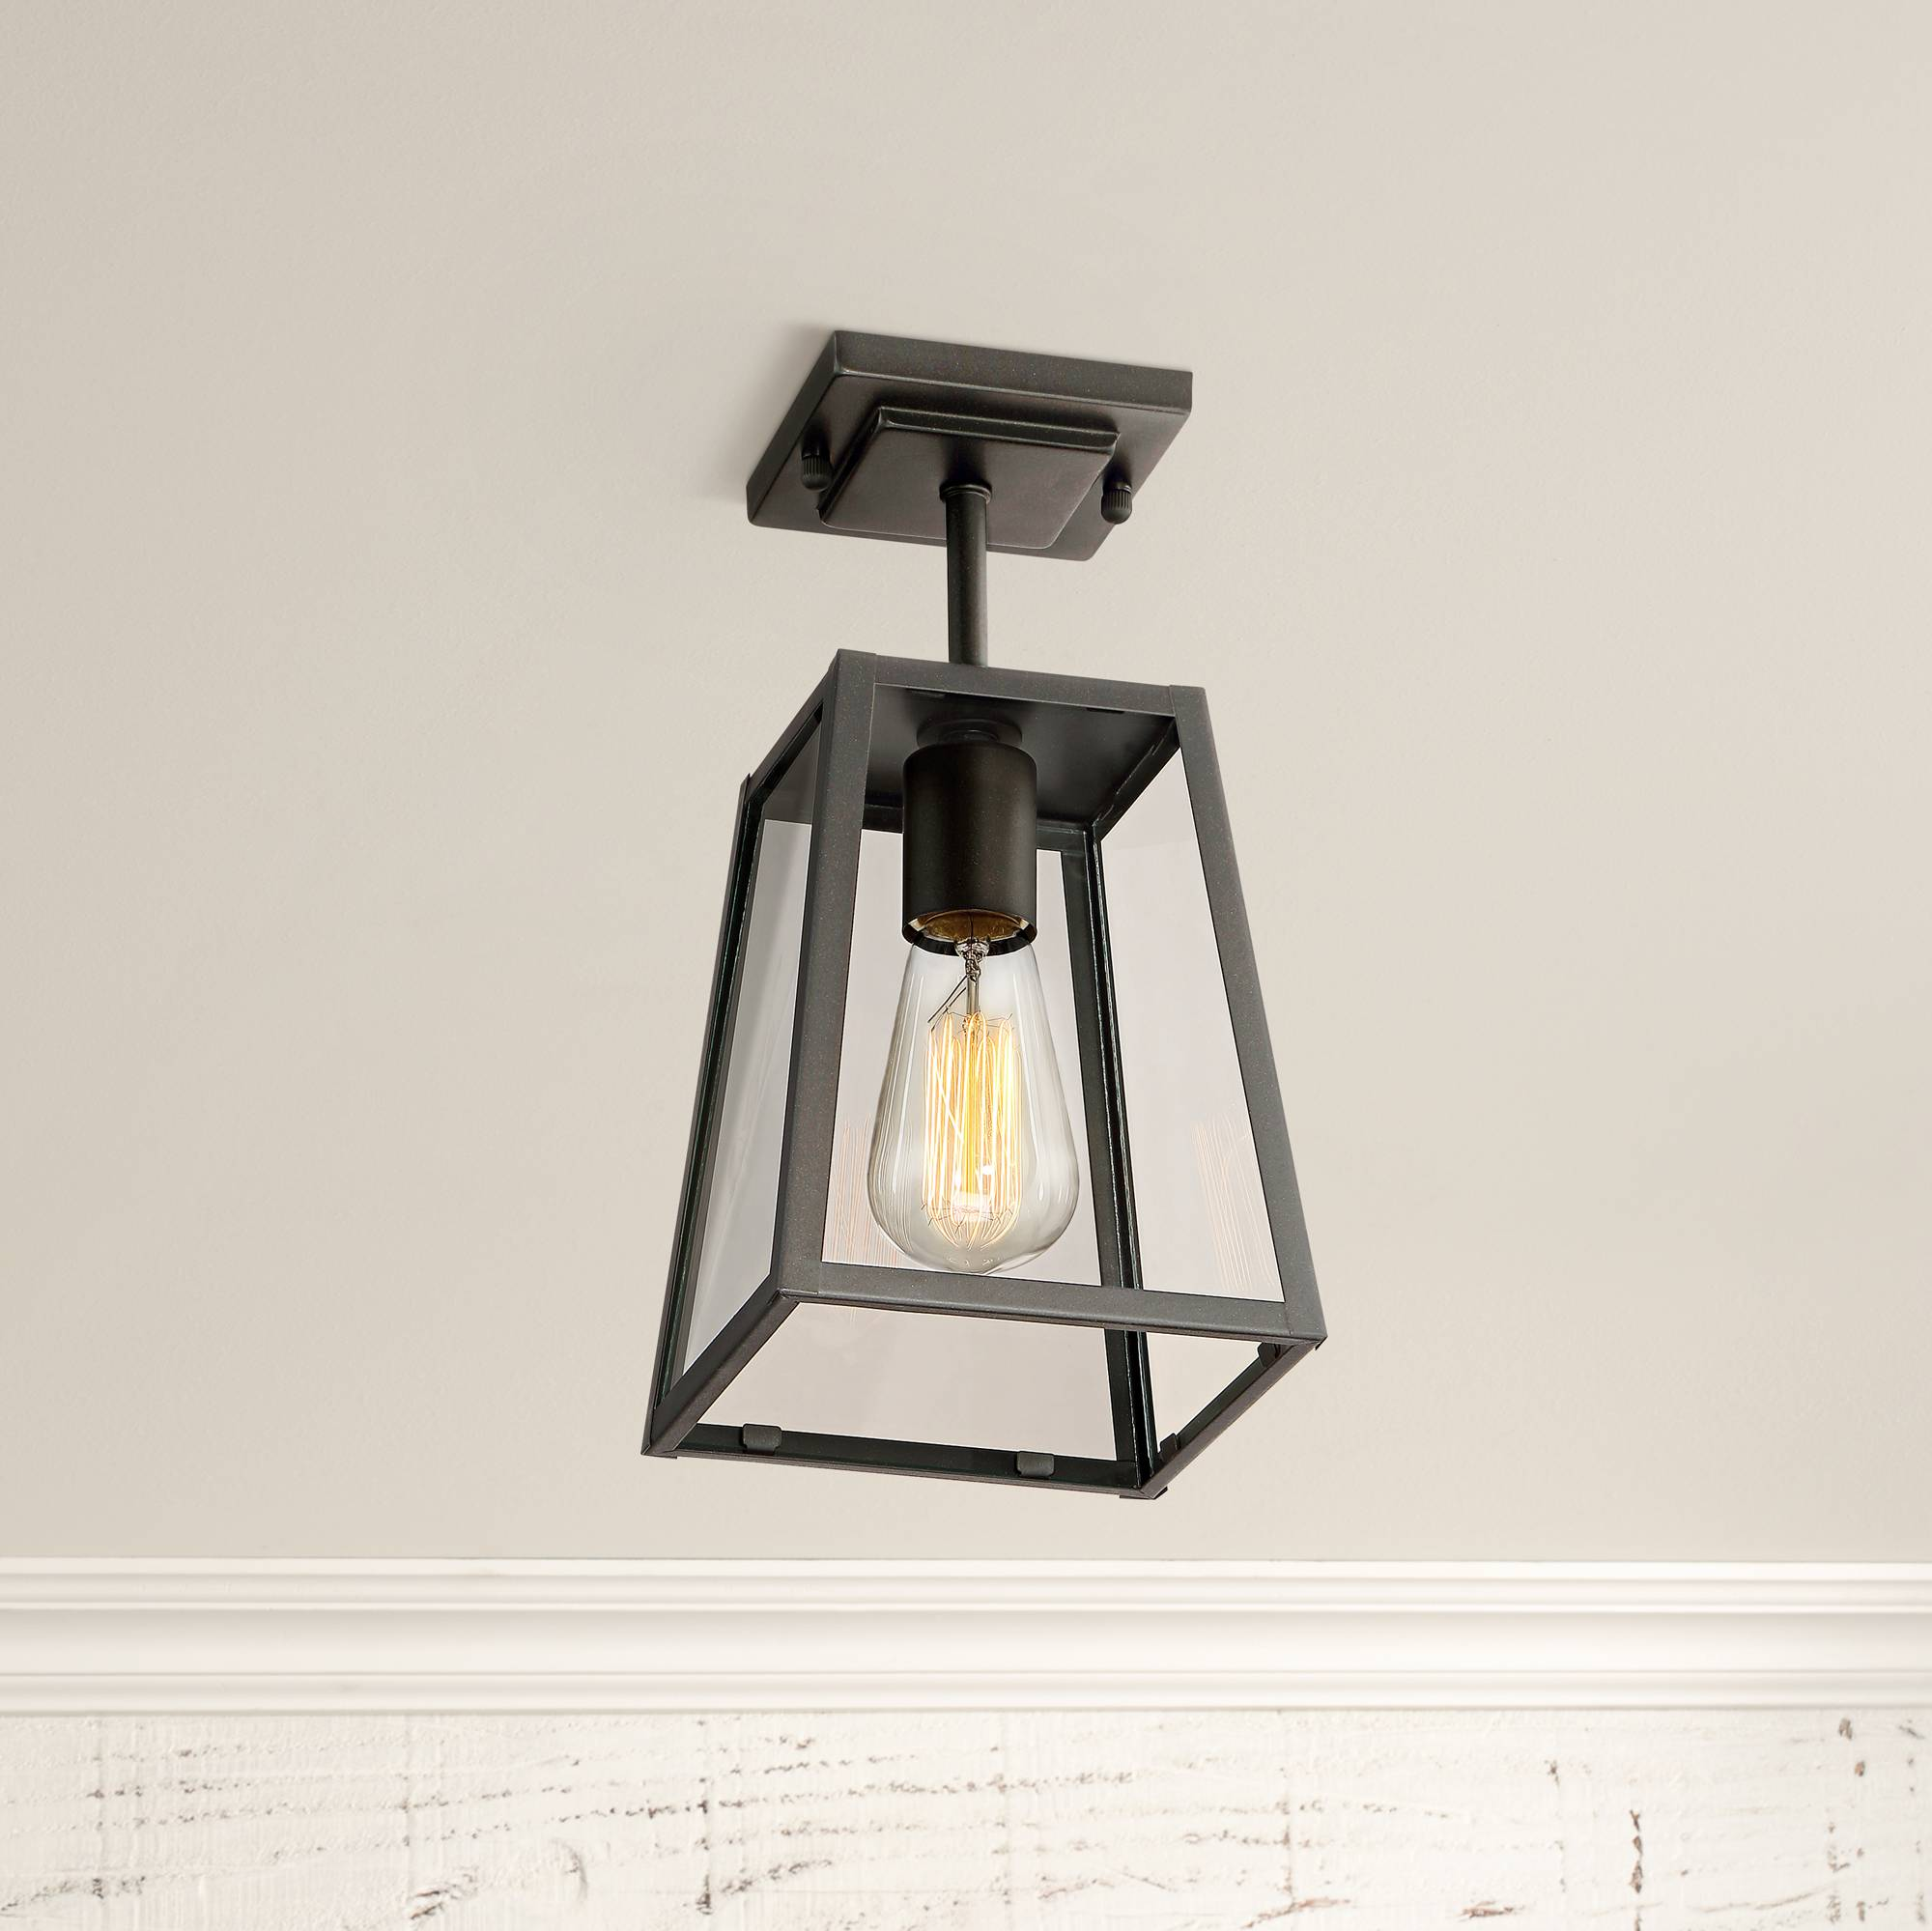 Details about modern outdoor ceiling light fixture mystic black 6 damp for house porch patio